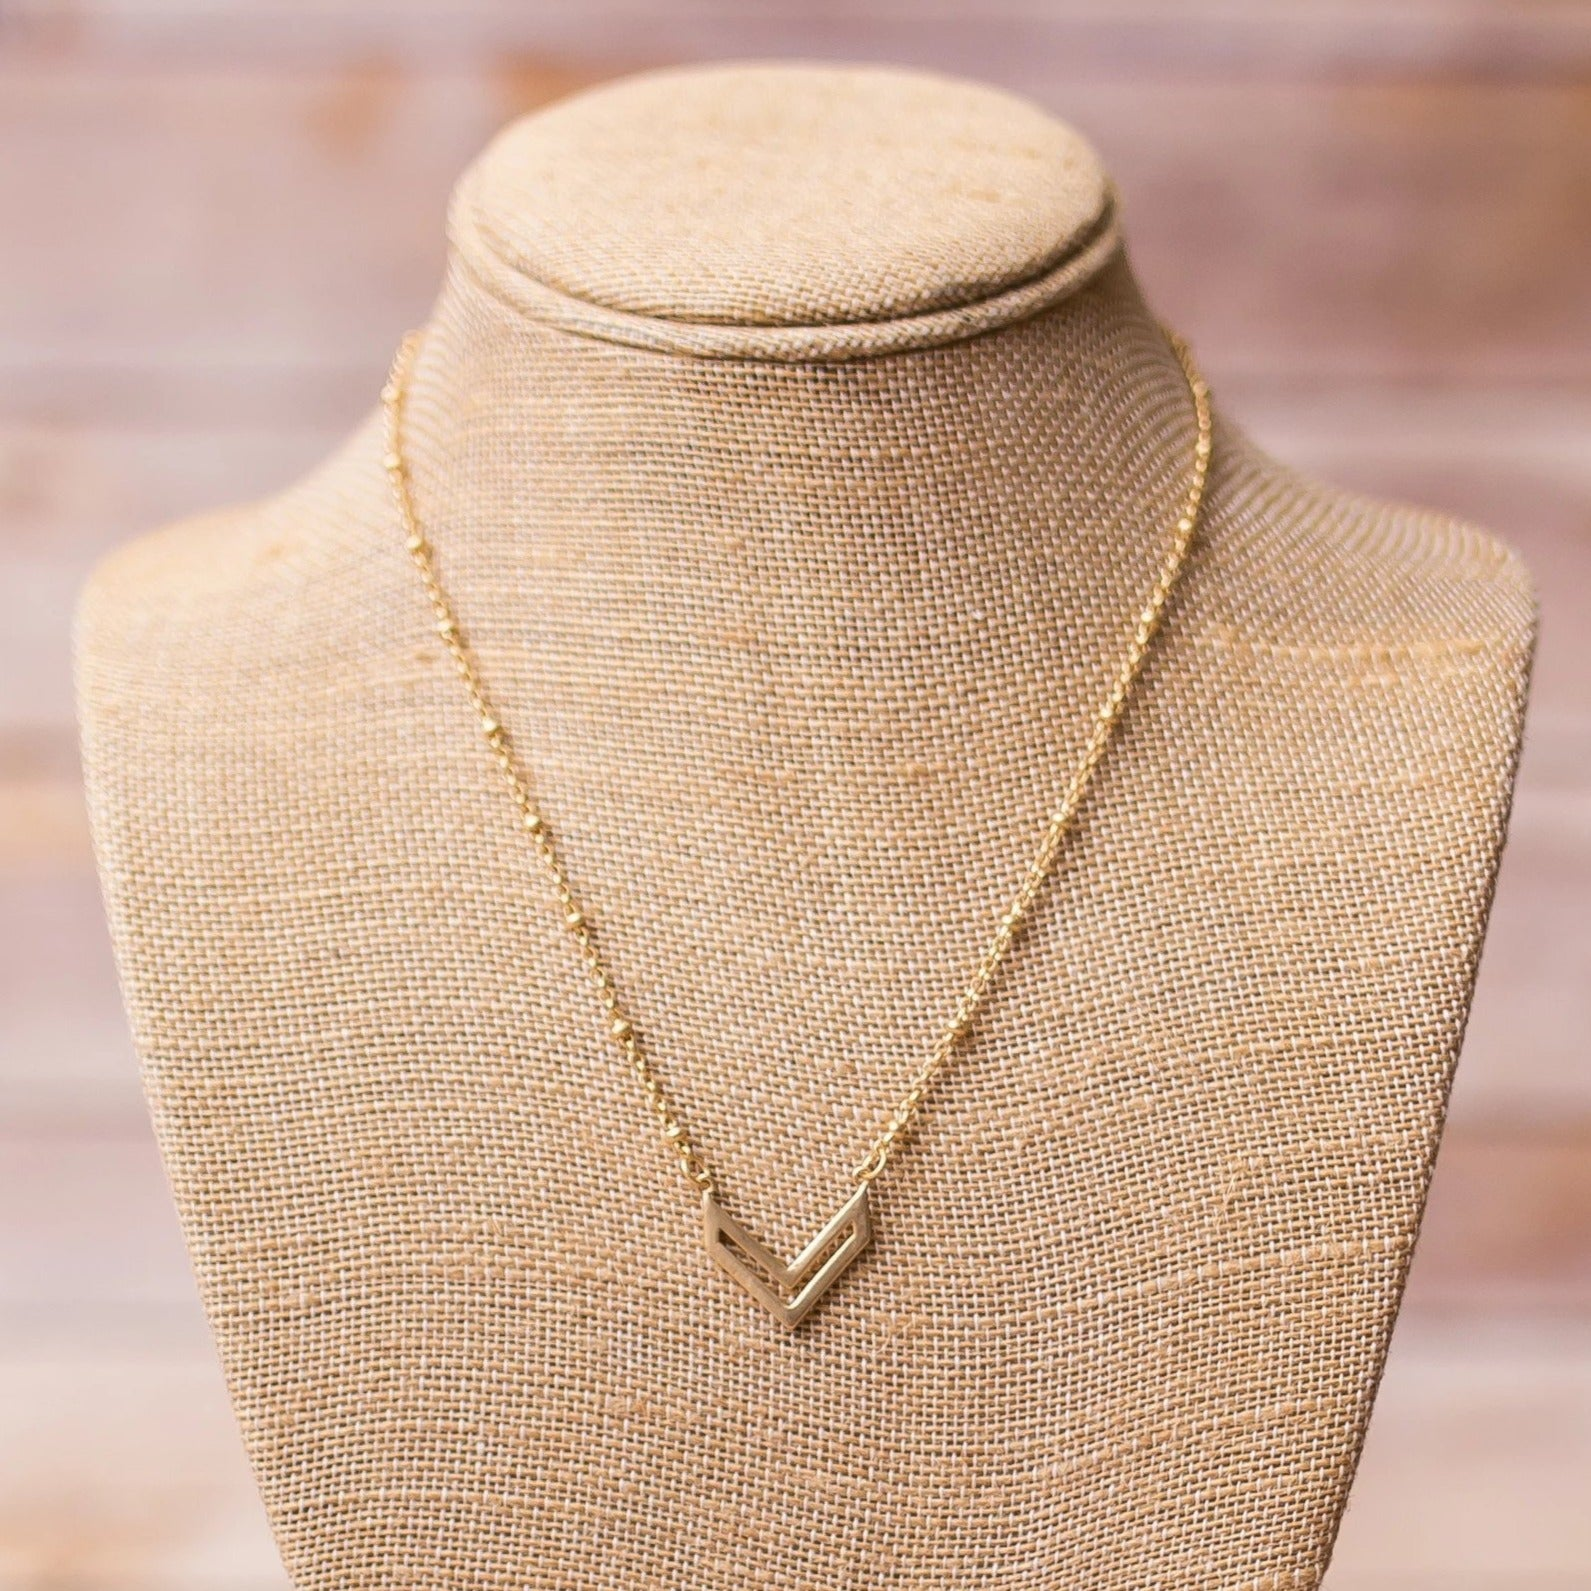 Gold Plated Necklace with Pendant - Swara Jewelry